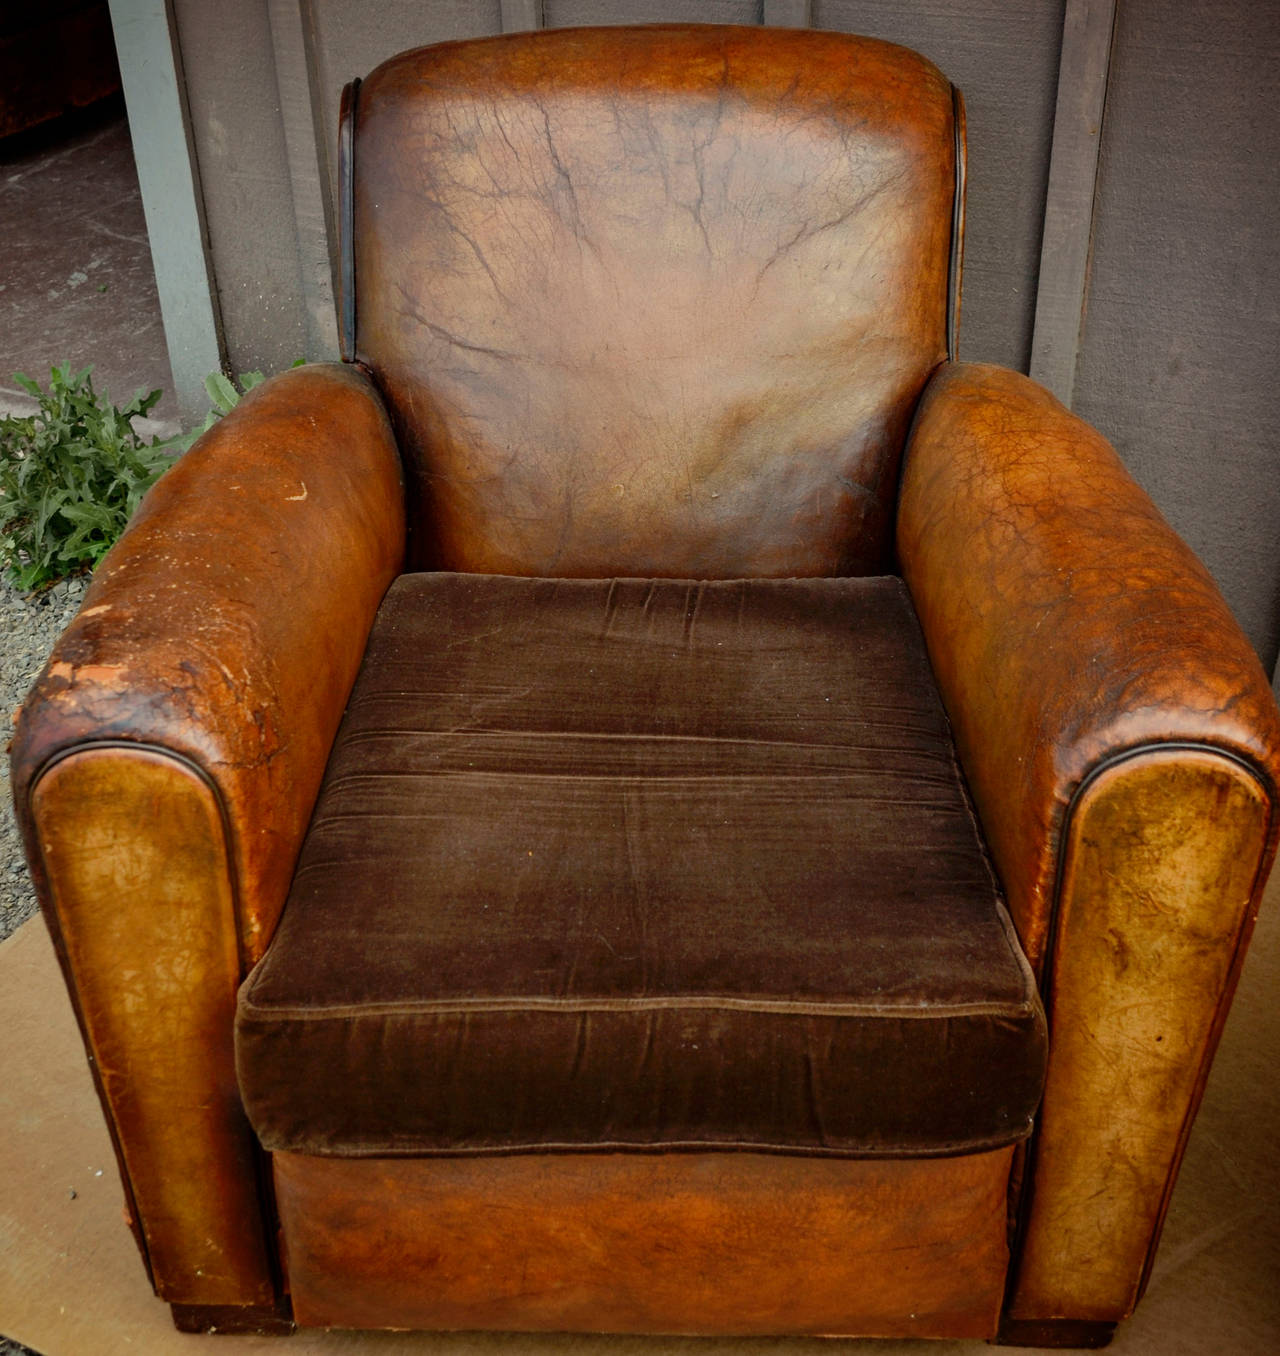 A pair of comfortable vintage French leather club chairs with velvet cushions. Approx 20th Century. Wear consistent with age and use. Priced for the set of chairs.